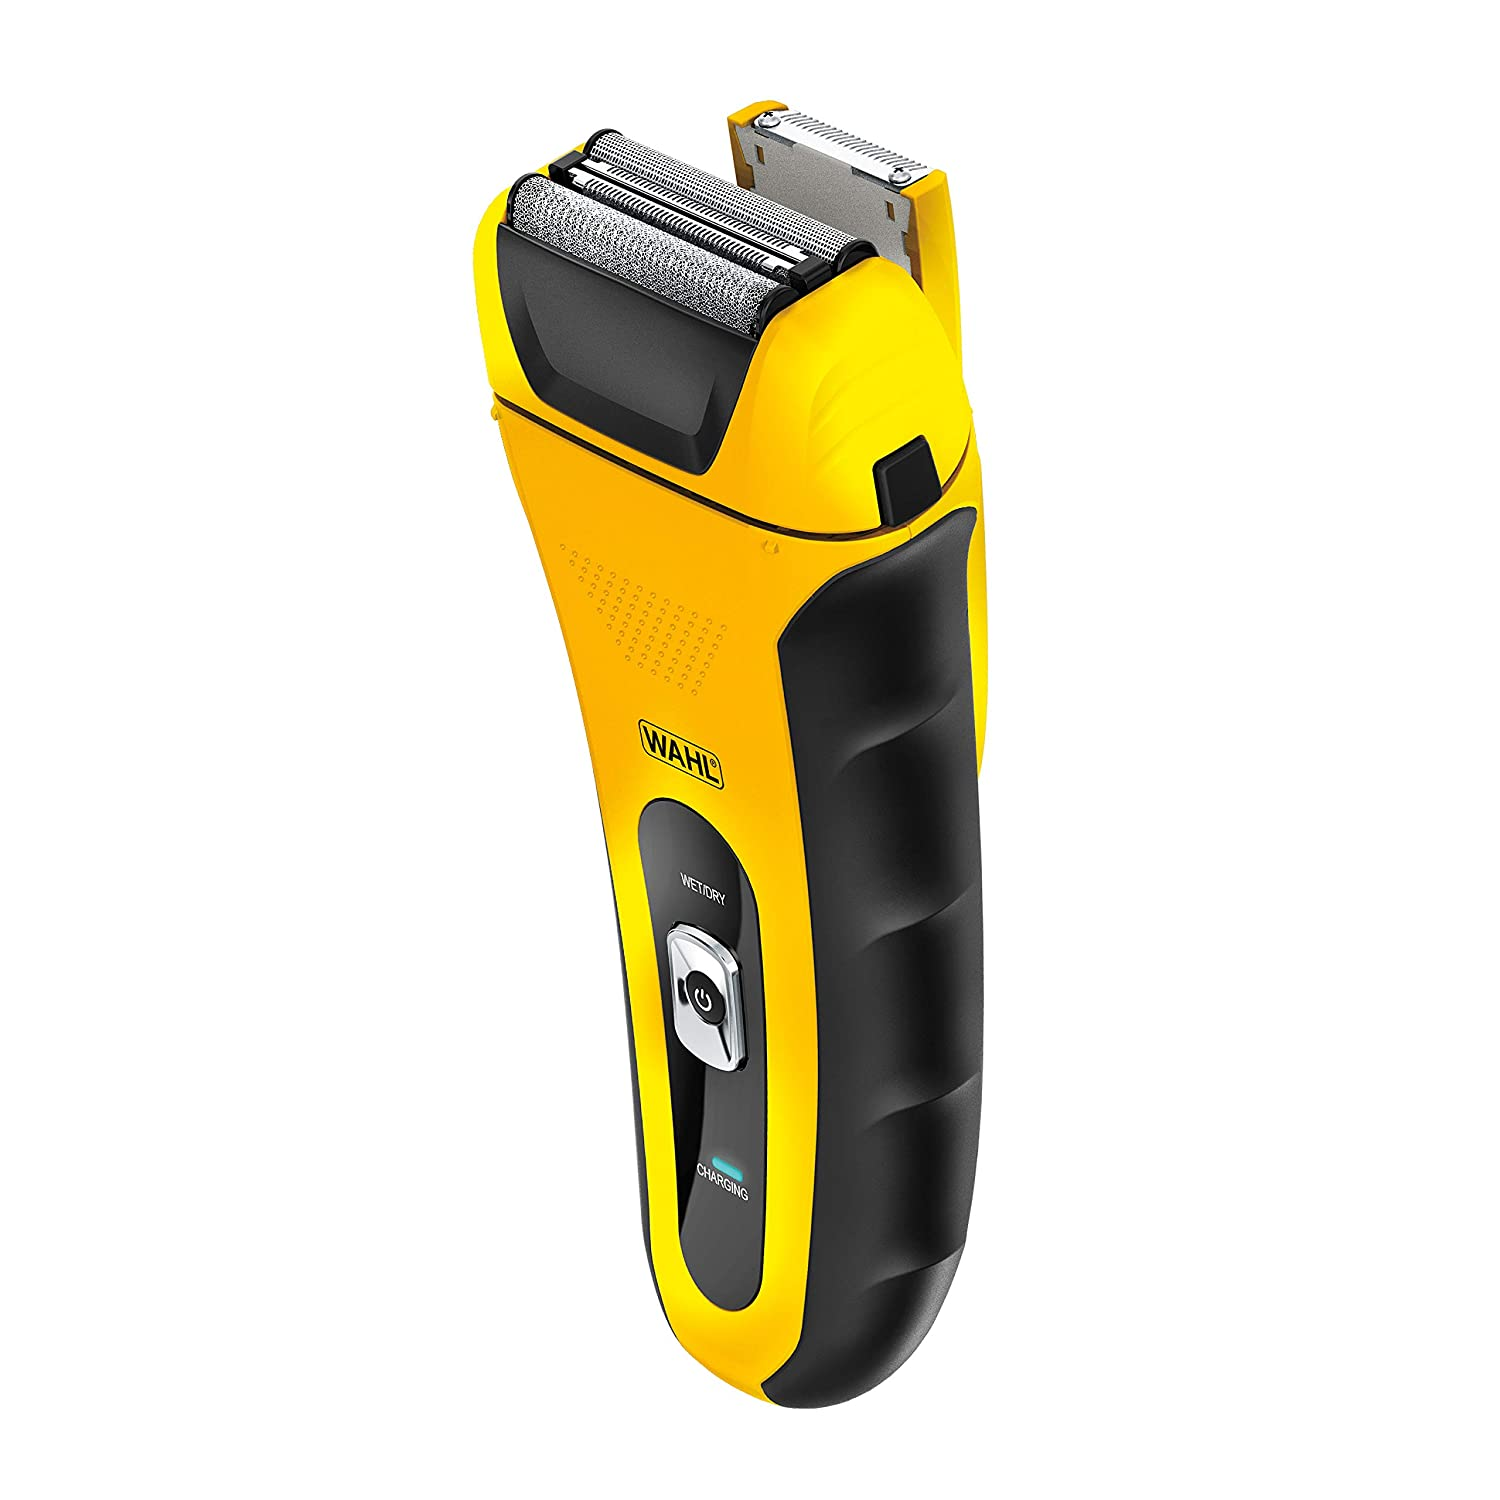 Wahl model 7061-100 lifeproof lithium ion foil shaver; best electric shaver